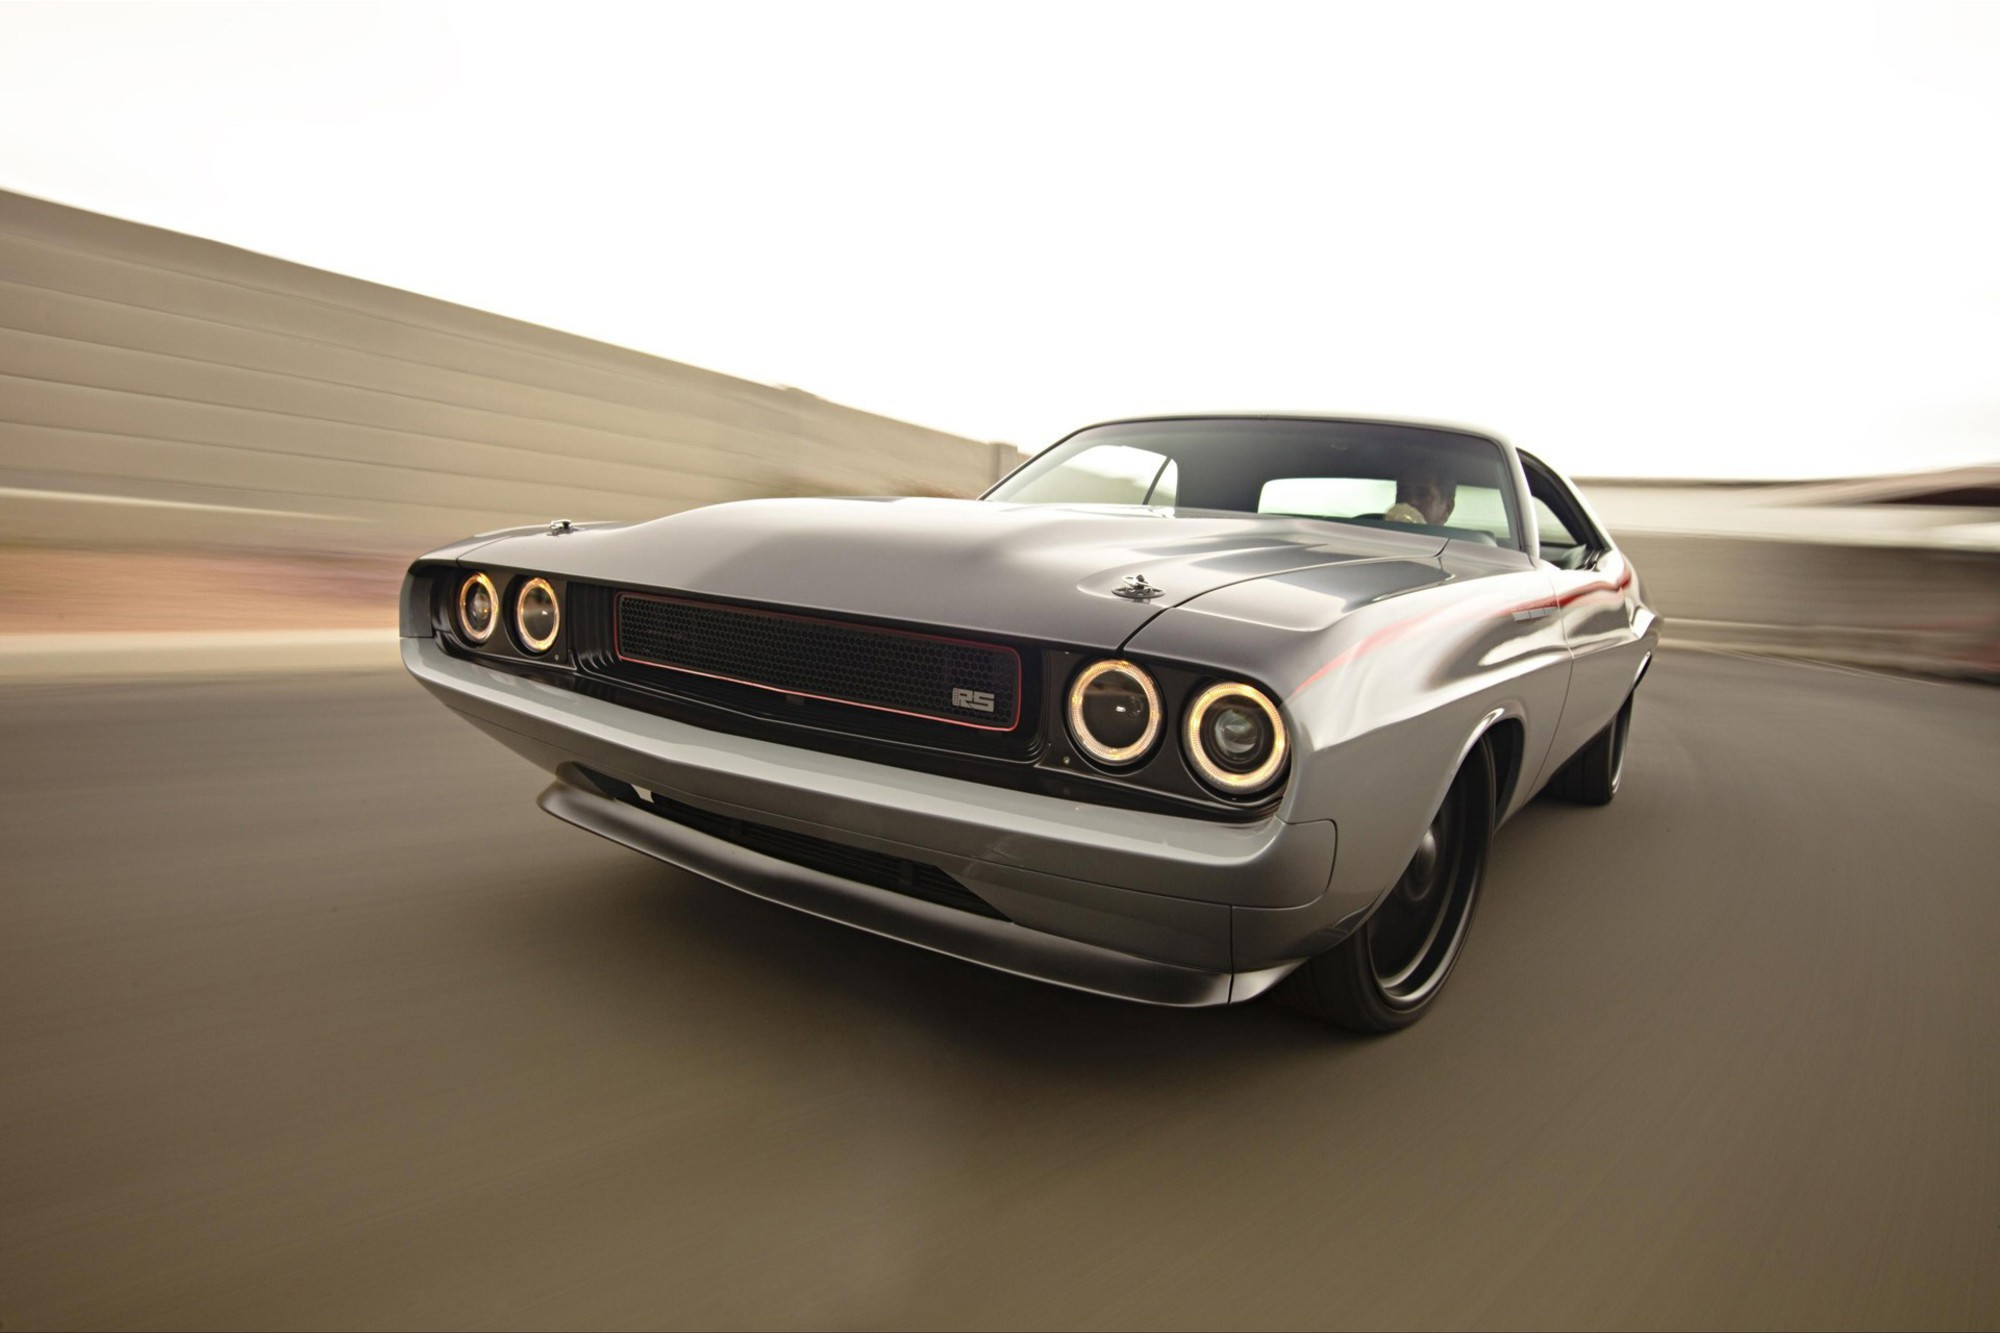 1970 Dodge Challenger Muscle Cars Roadster Shop Wallpaper Wiring Harness Resolutions